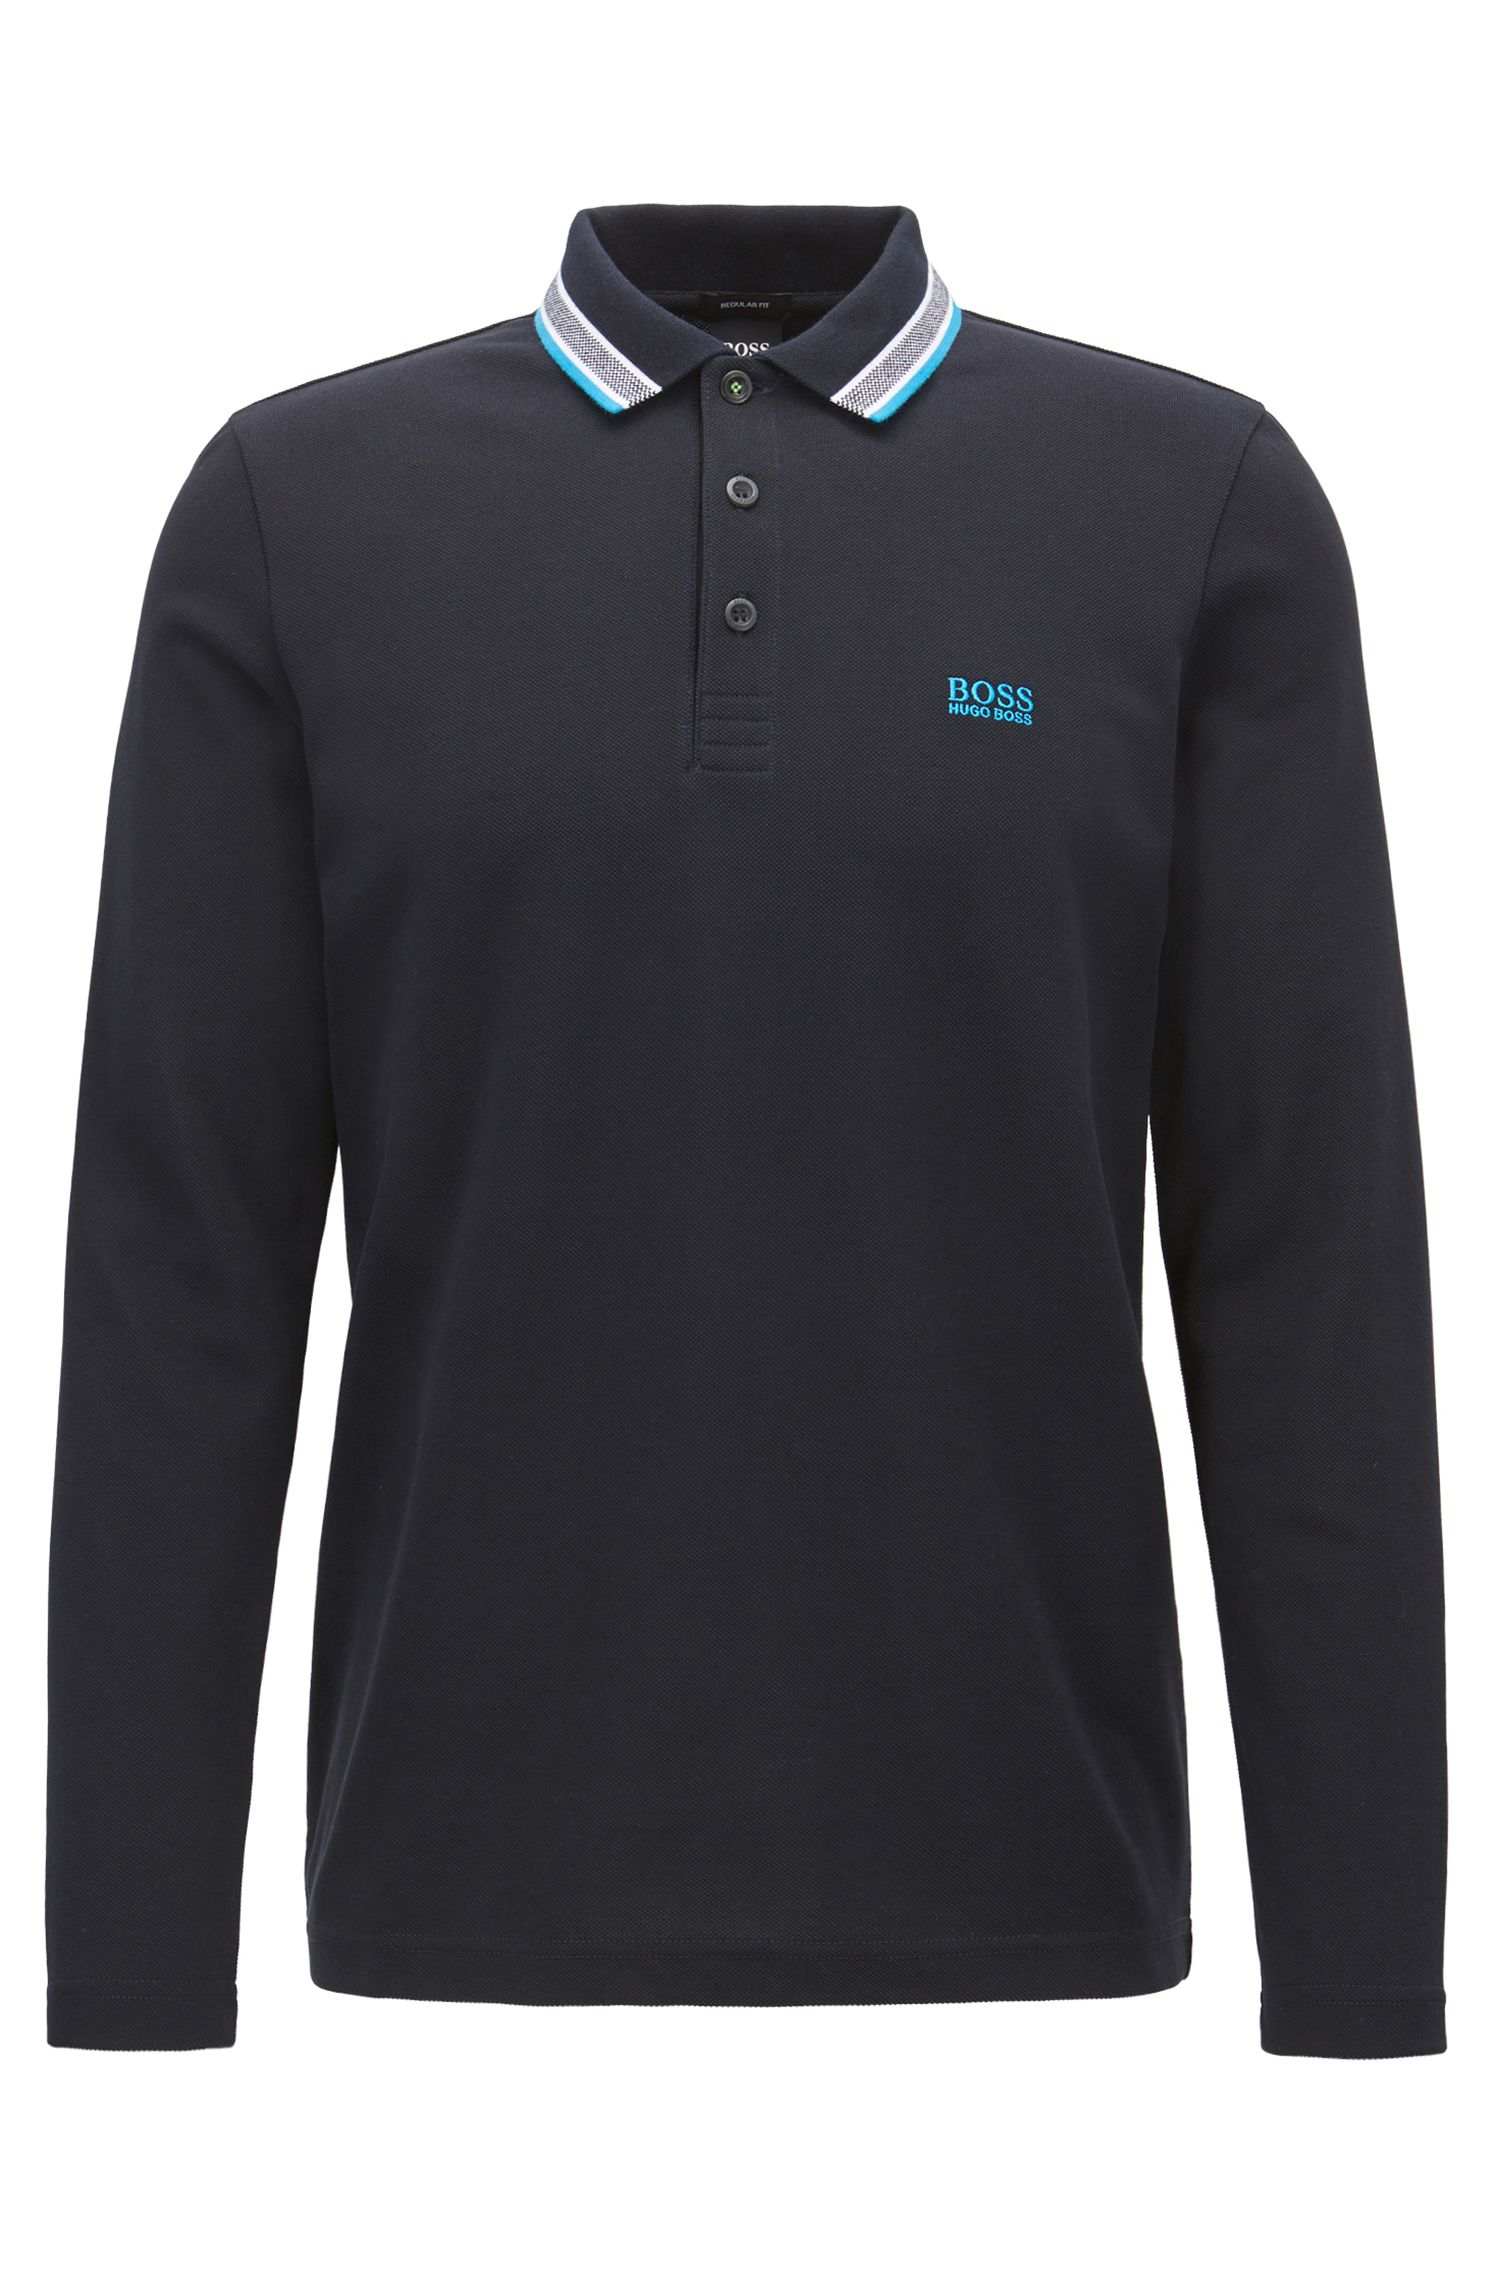 Cotton Pique Polo Shirt | Pilsy, Black